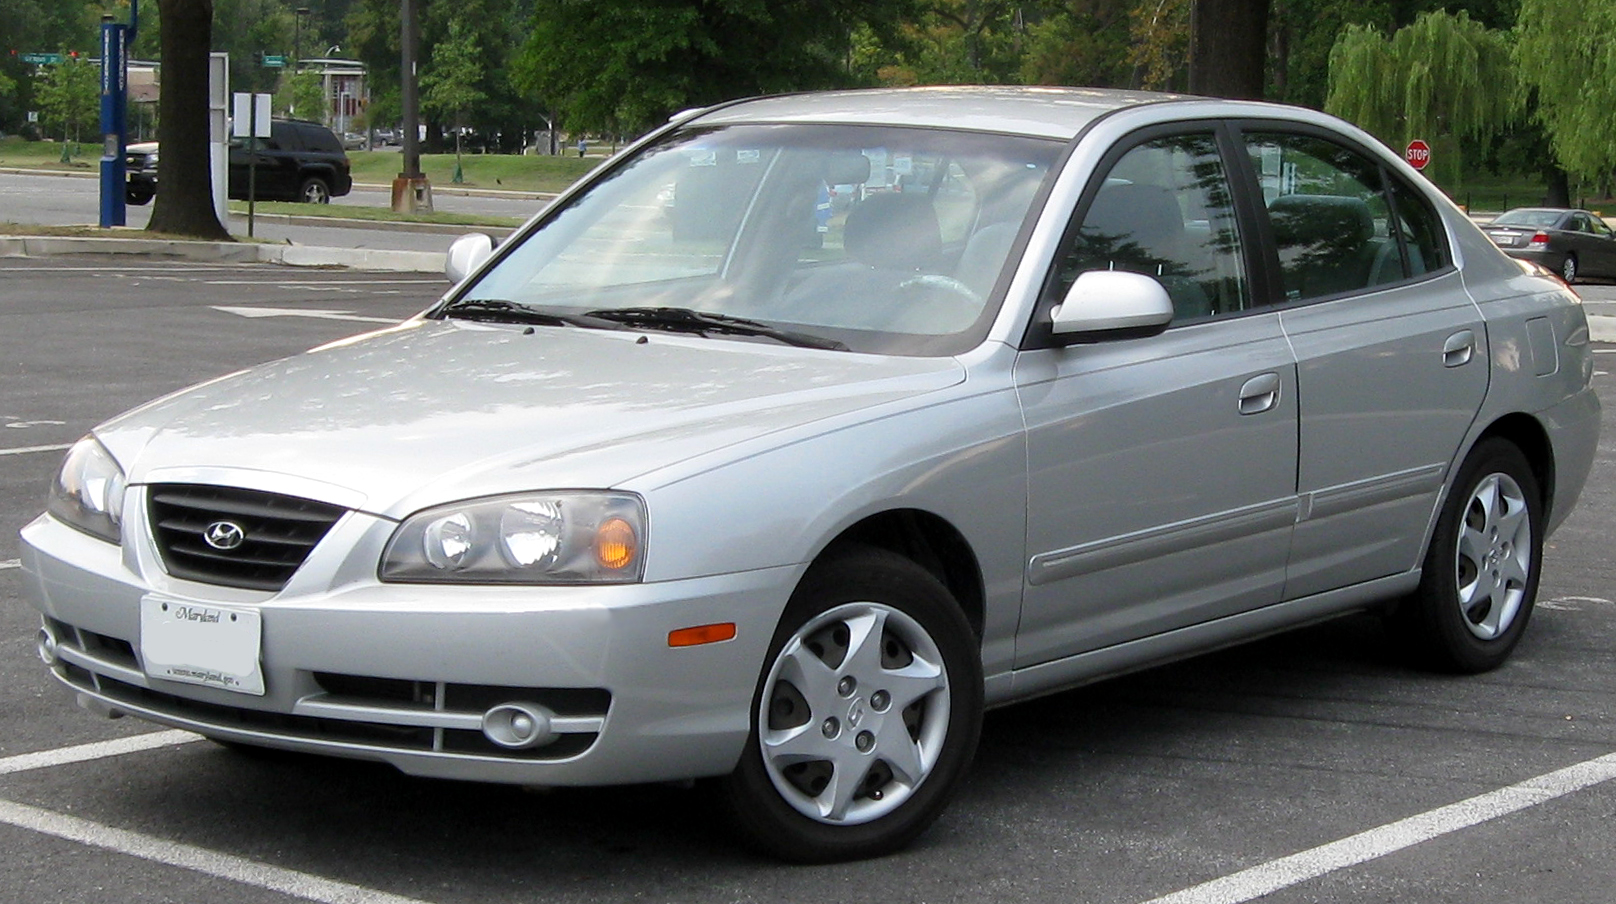 2004 Hyundai Elantra - Information and photos - ZombieDrive